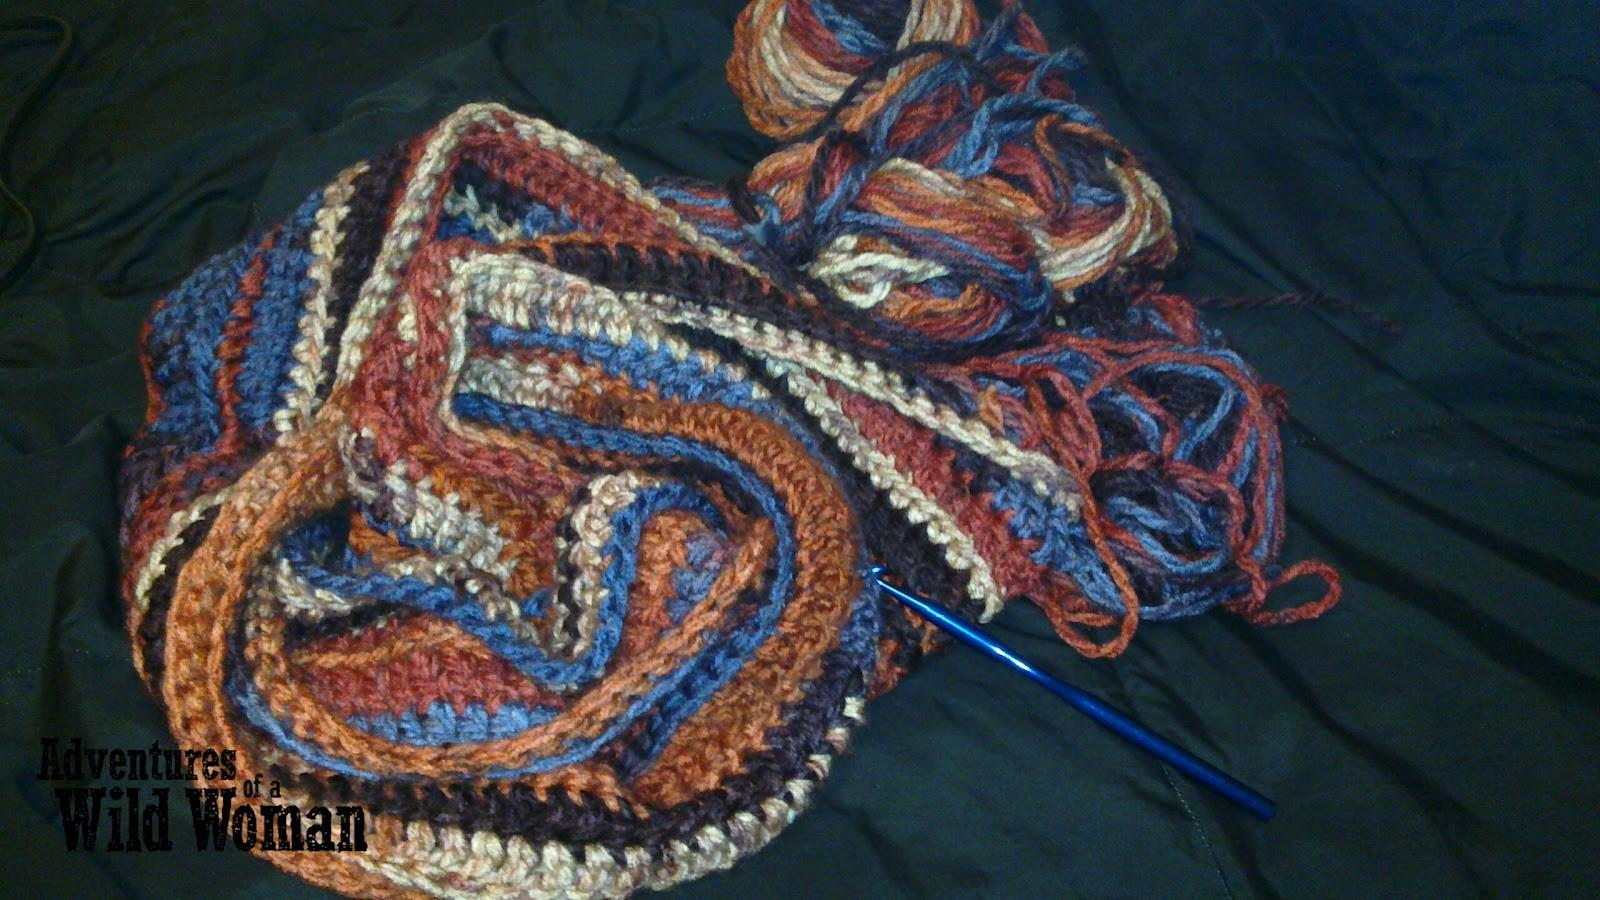 Adventures Wild Woman Comfy Crocheted Eternity Scarf